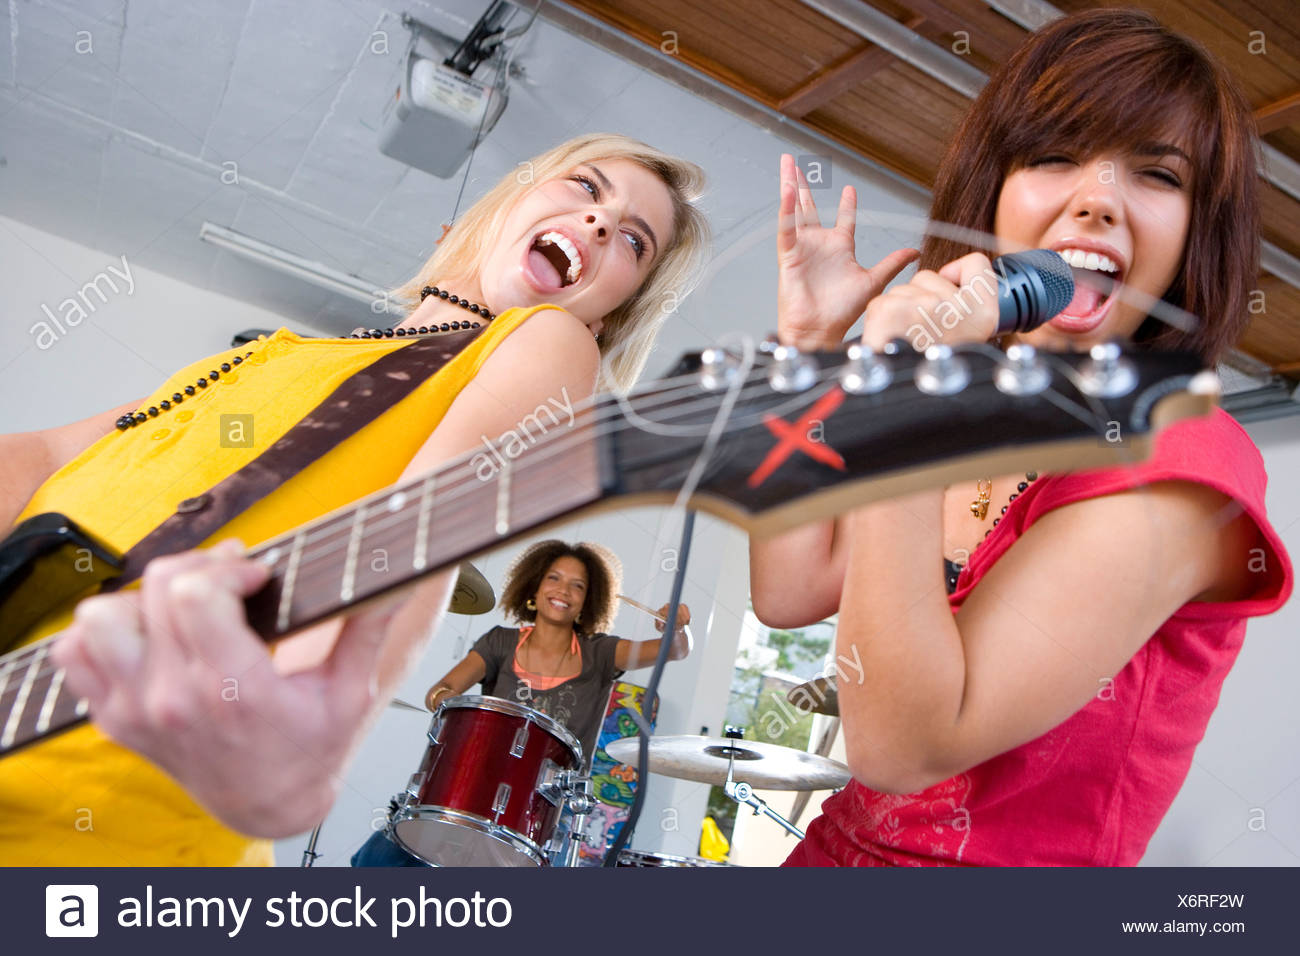 Three teenagers  in garage band, teenage girls singing and playing guitar in foreground - Stock Image